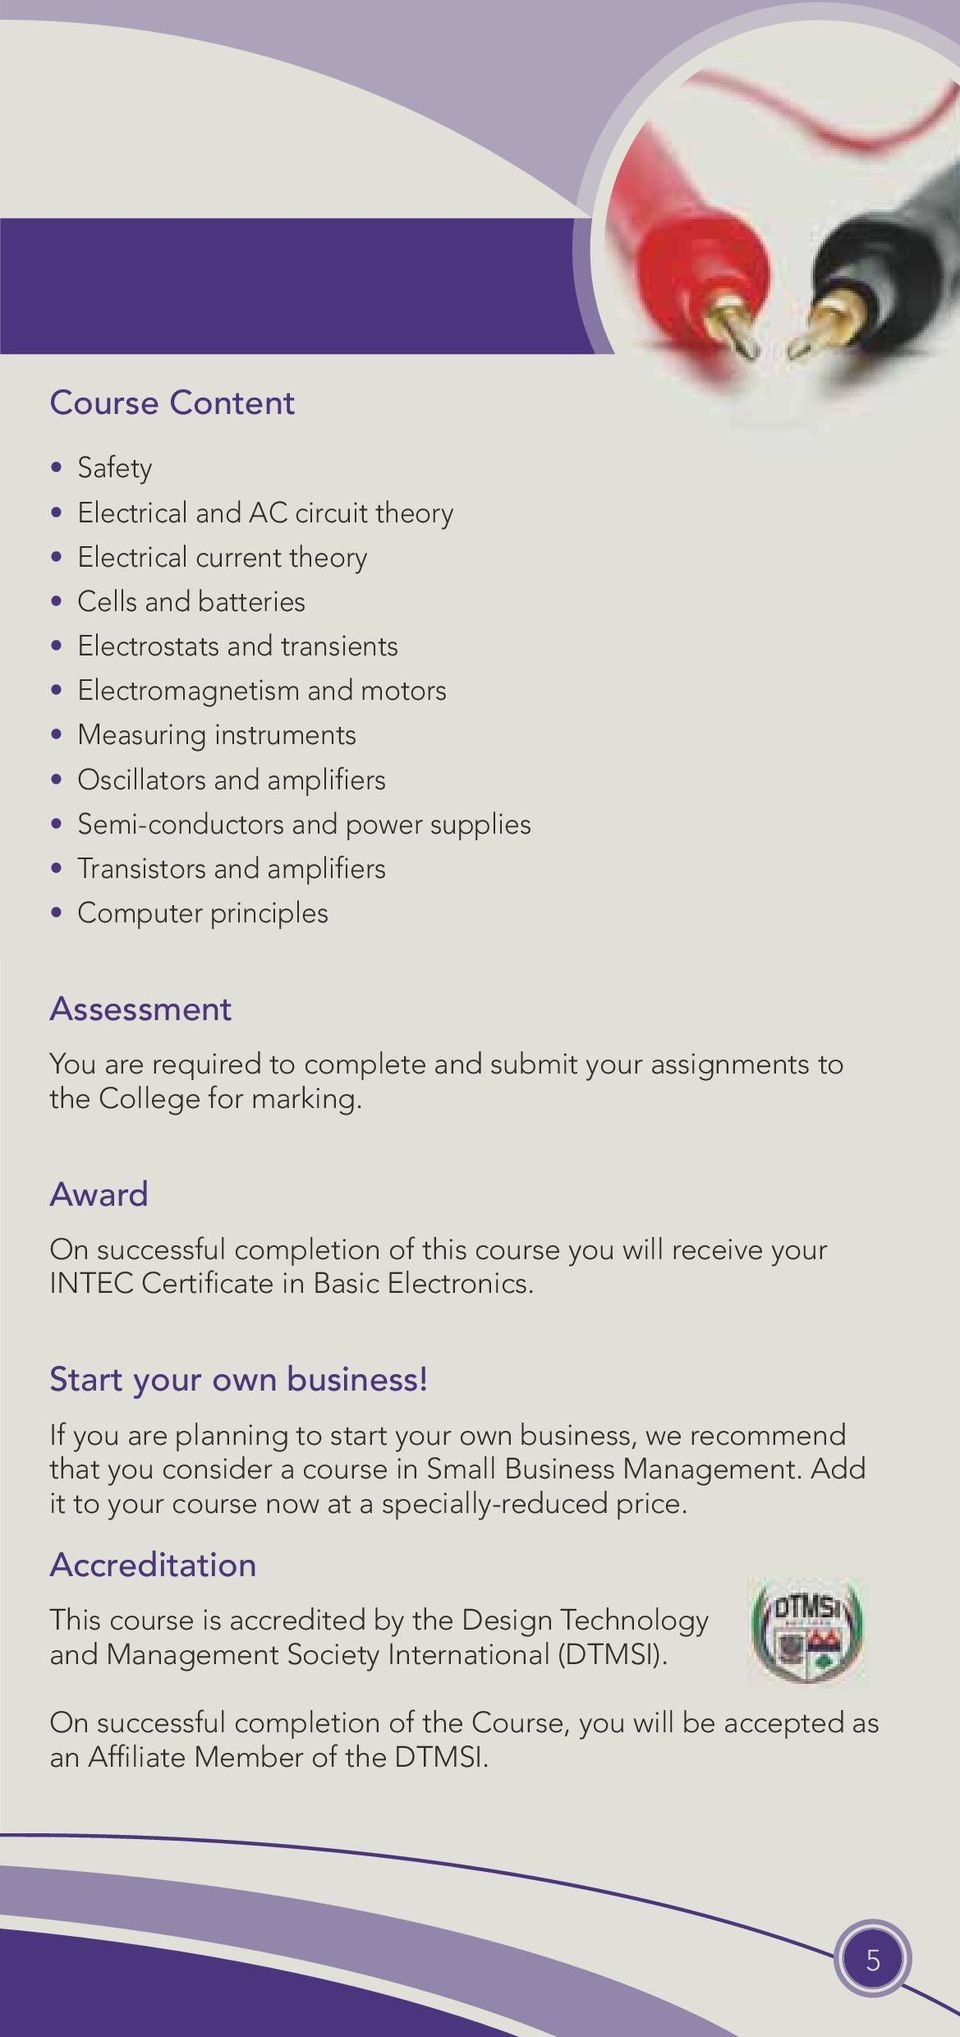 Award On successful completion of this course you will receive your INTEC Certificate in Basic Electronics. Start your own business!